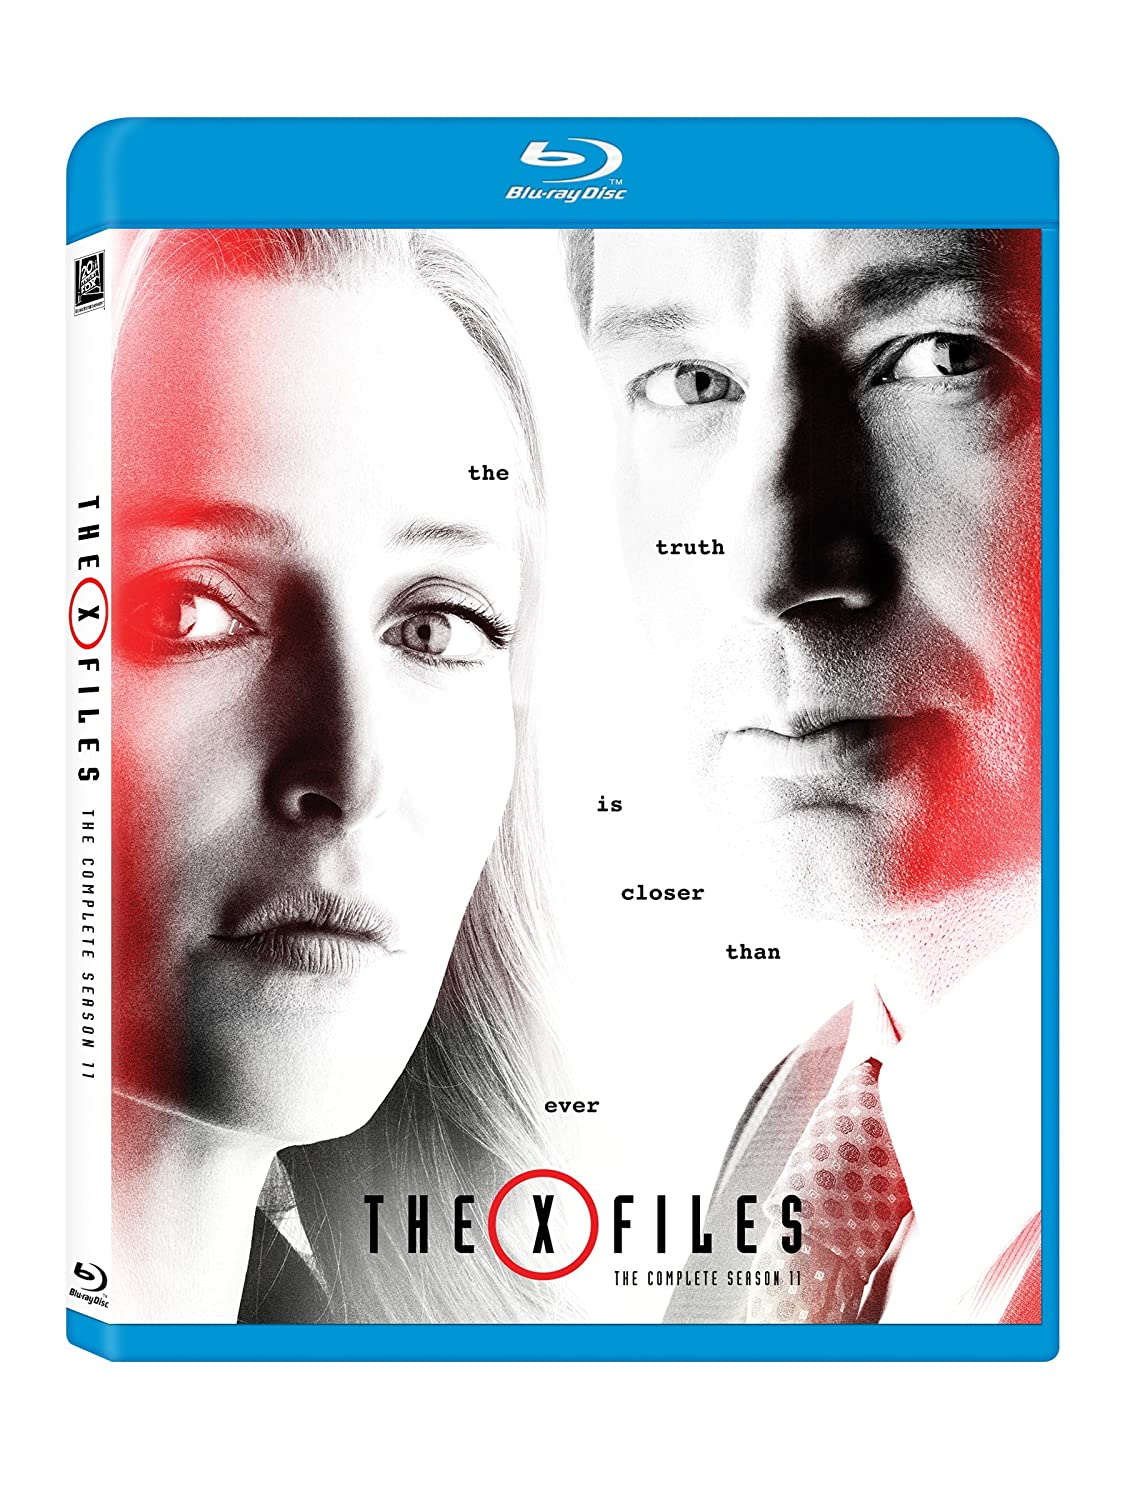 Amazon.com: X-Files: Season 11 [Blu-ray]: Movies & TV